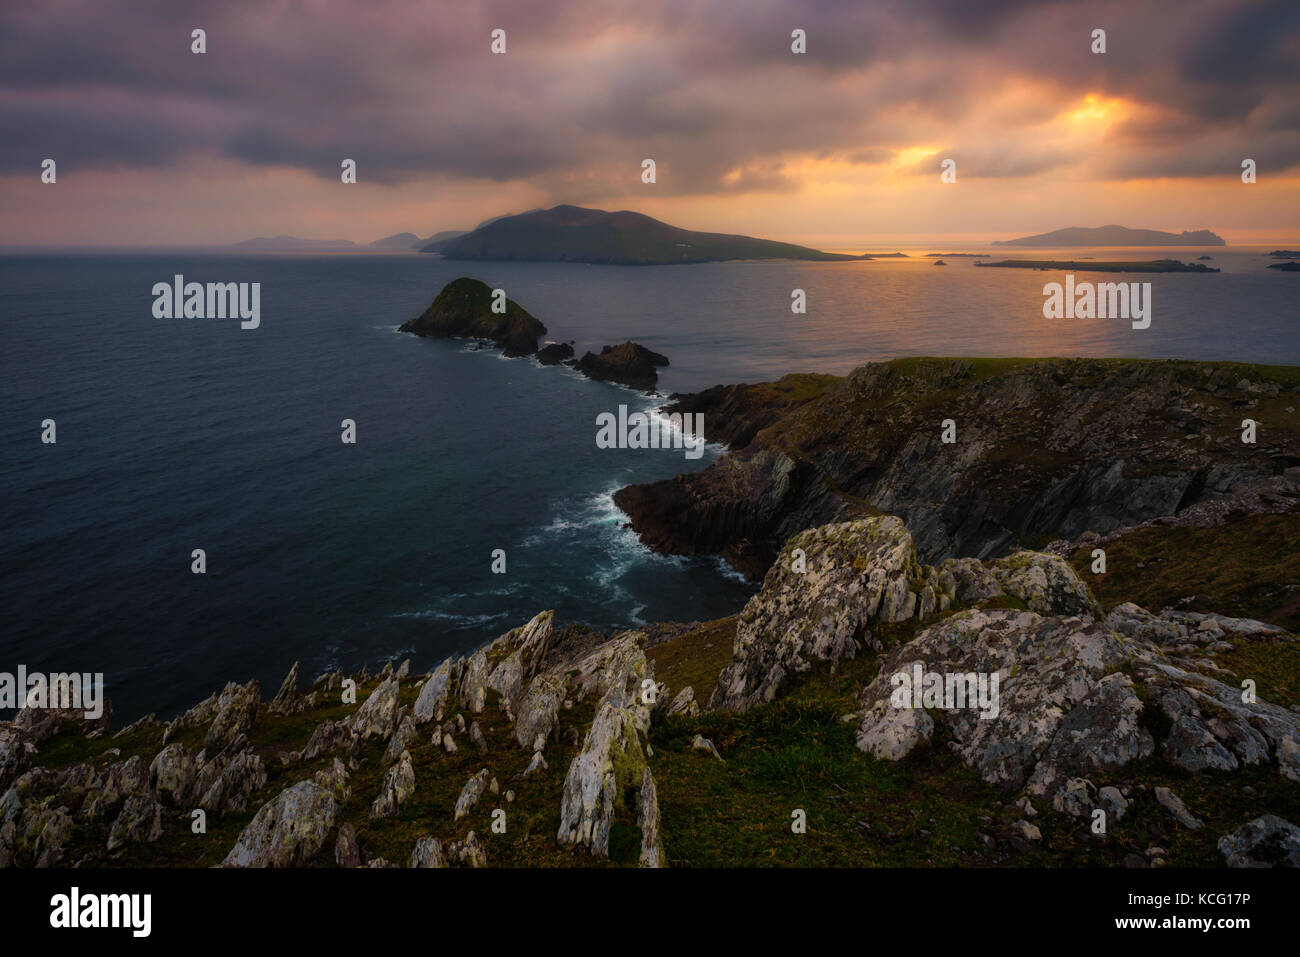 Sunset at Slea Head in Co. Kerry - Ireland - Stock Image